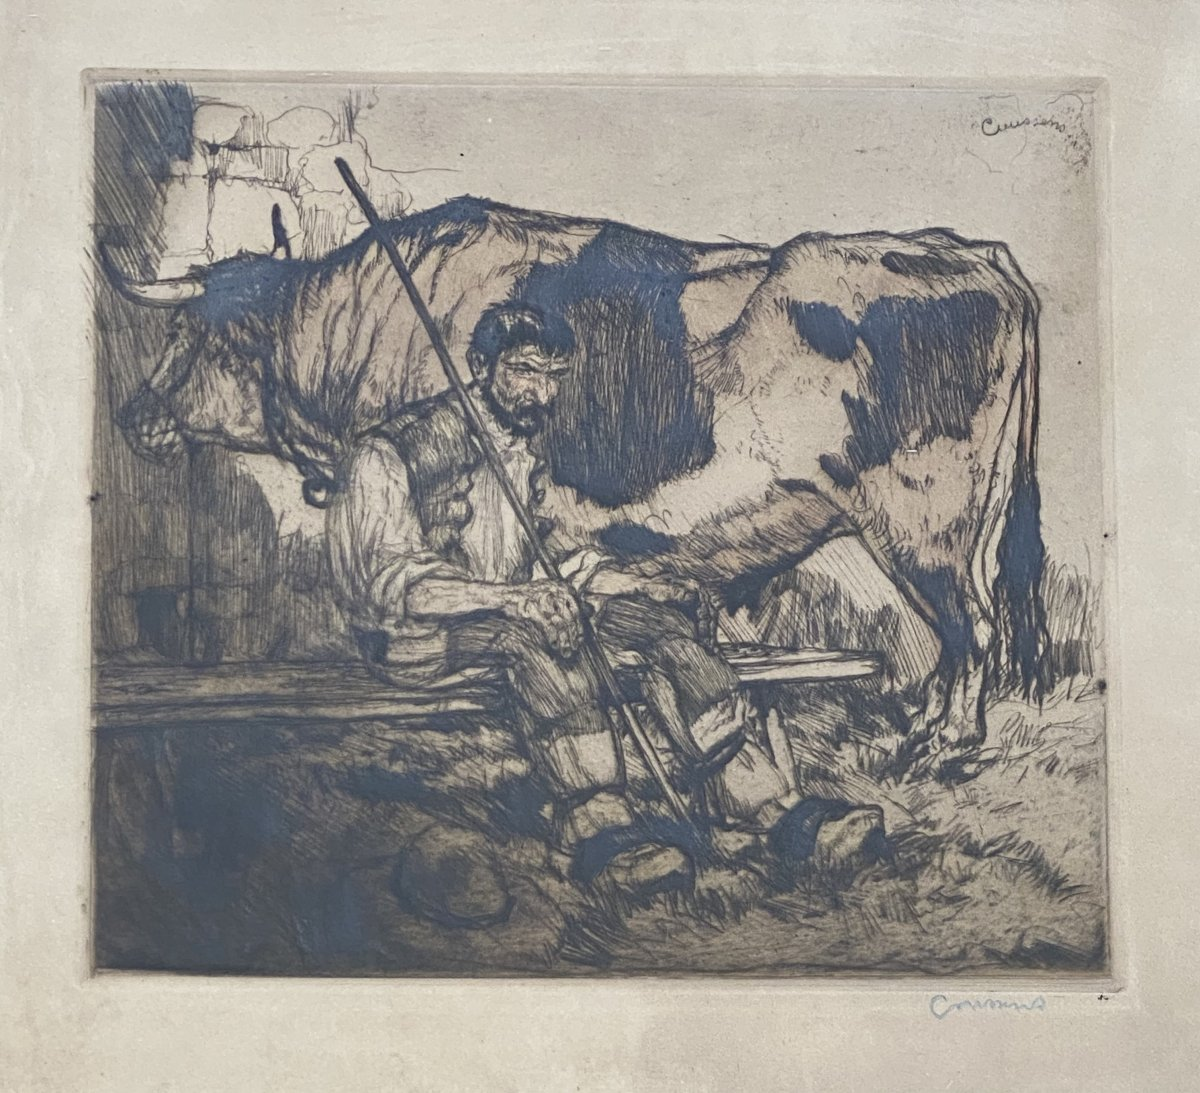 Framed Etching By Armand Coussens: Le Vacher